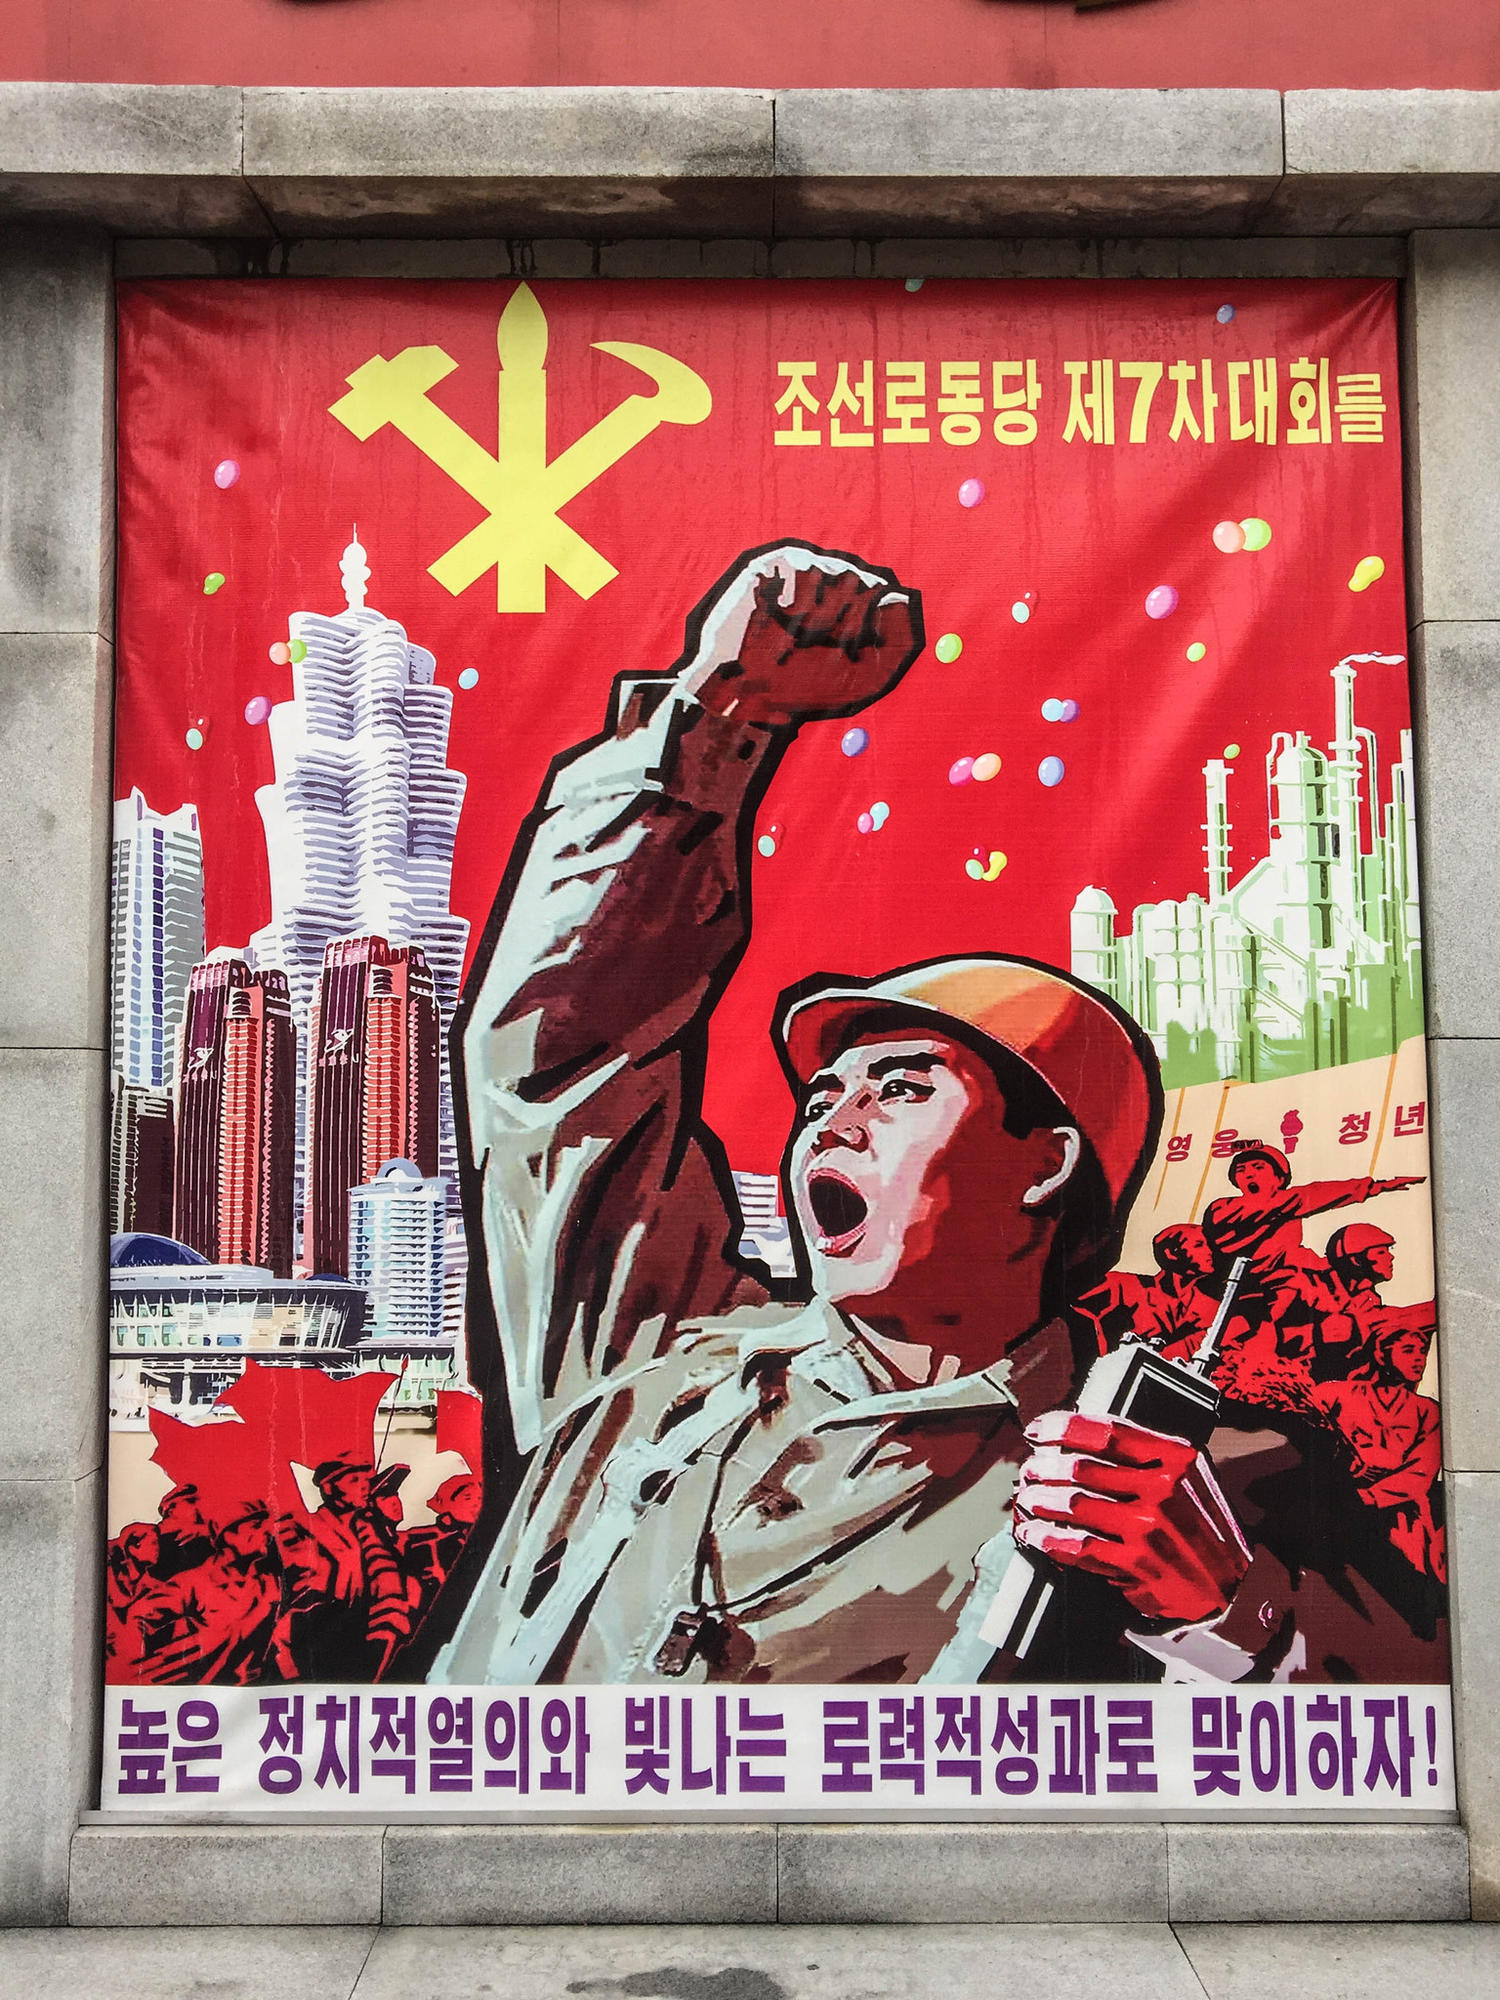 "A piece of propaganda art outside the factory. The poster exhorts workers to work hard ahead of the party congress. Depicted in the background are skyscrapers from the new ""Future Science Street"" in Pyongyang, a residential district for scientists and professors that was built at the behest of Kim Jong Un. It reads:"